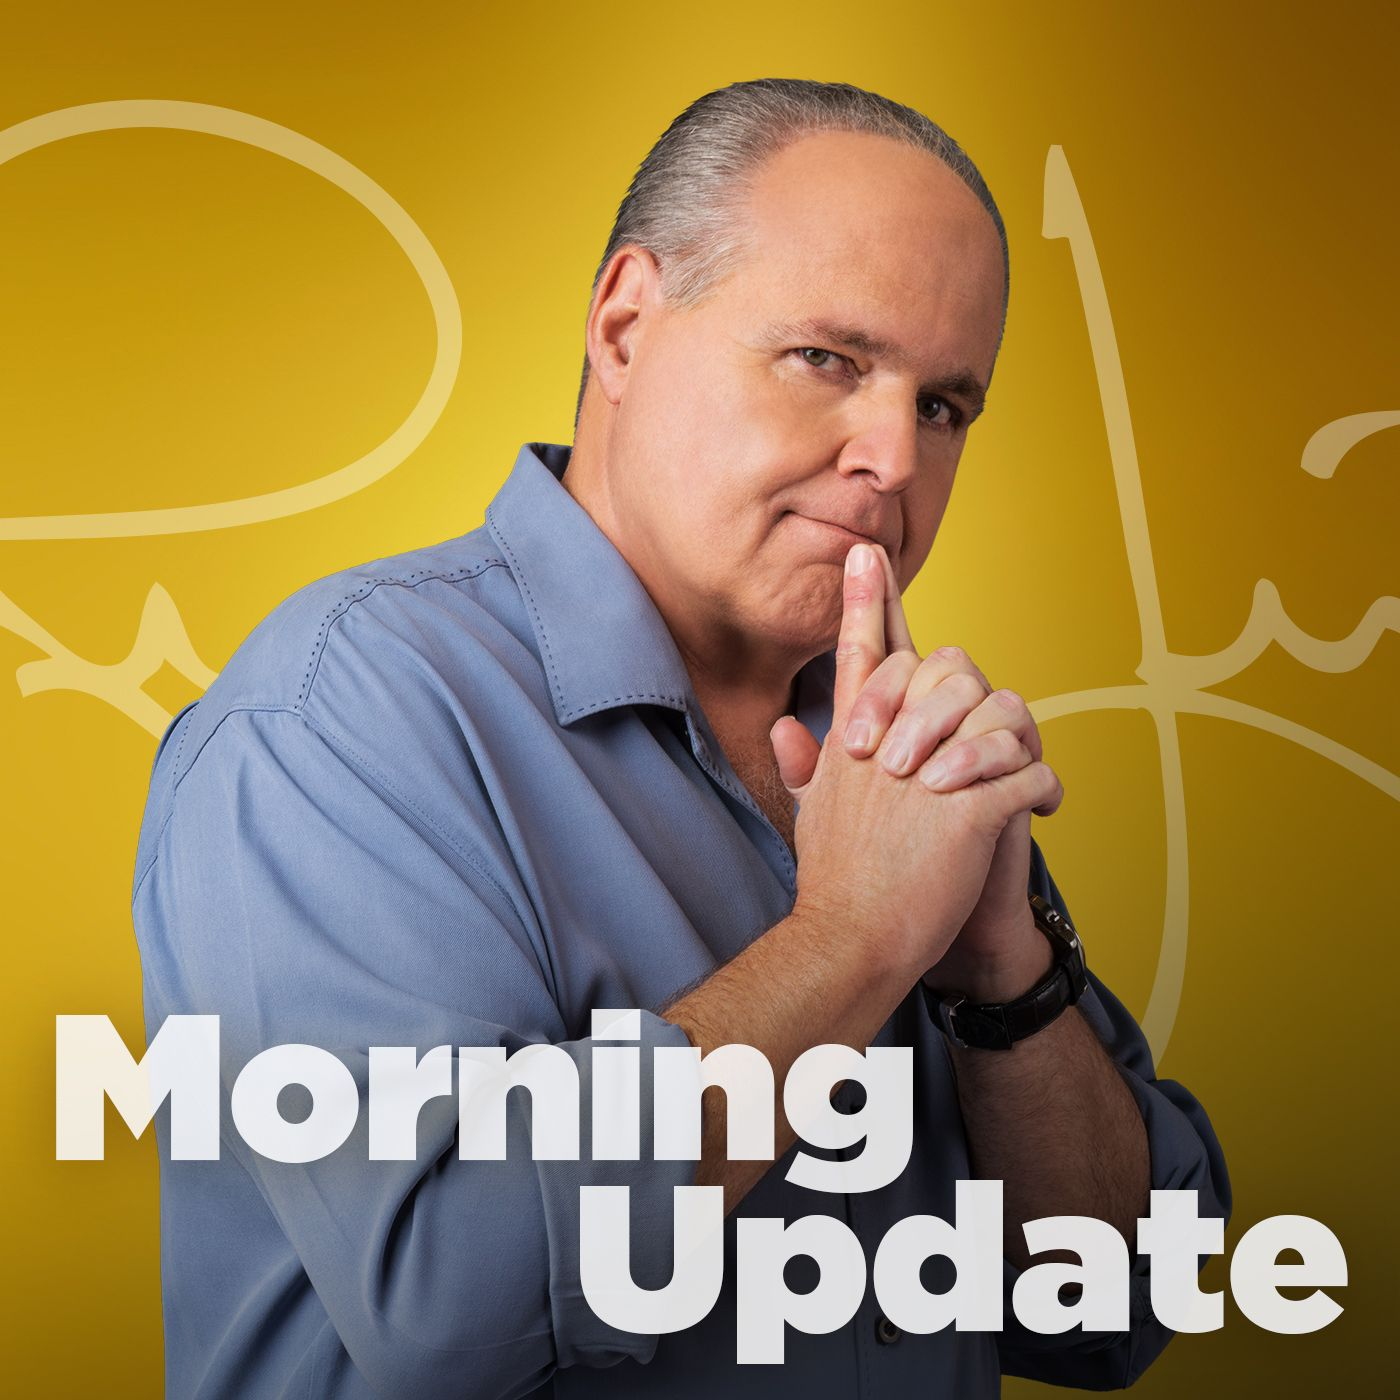 Rush Limbaugh May 16, 2019